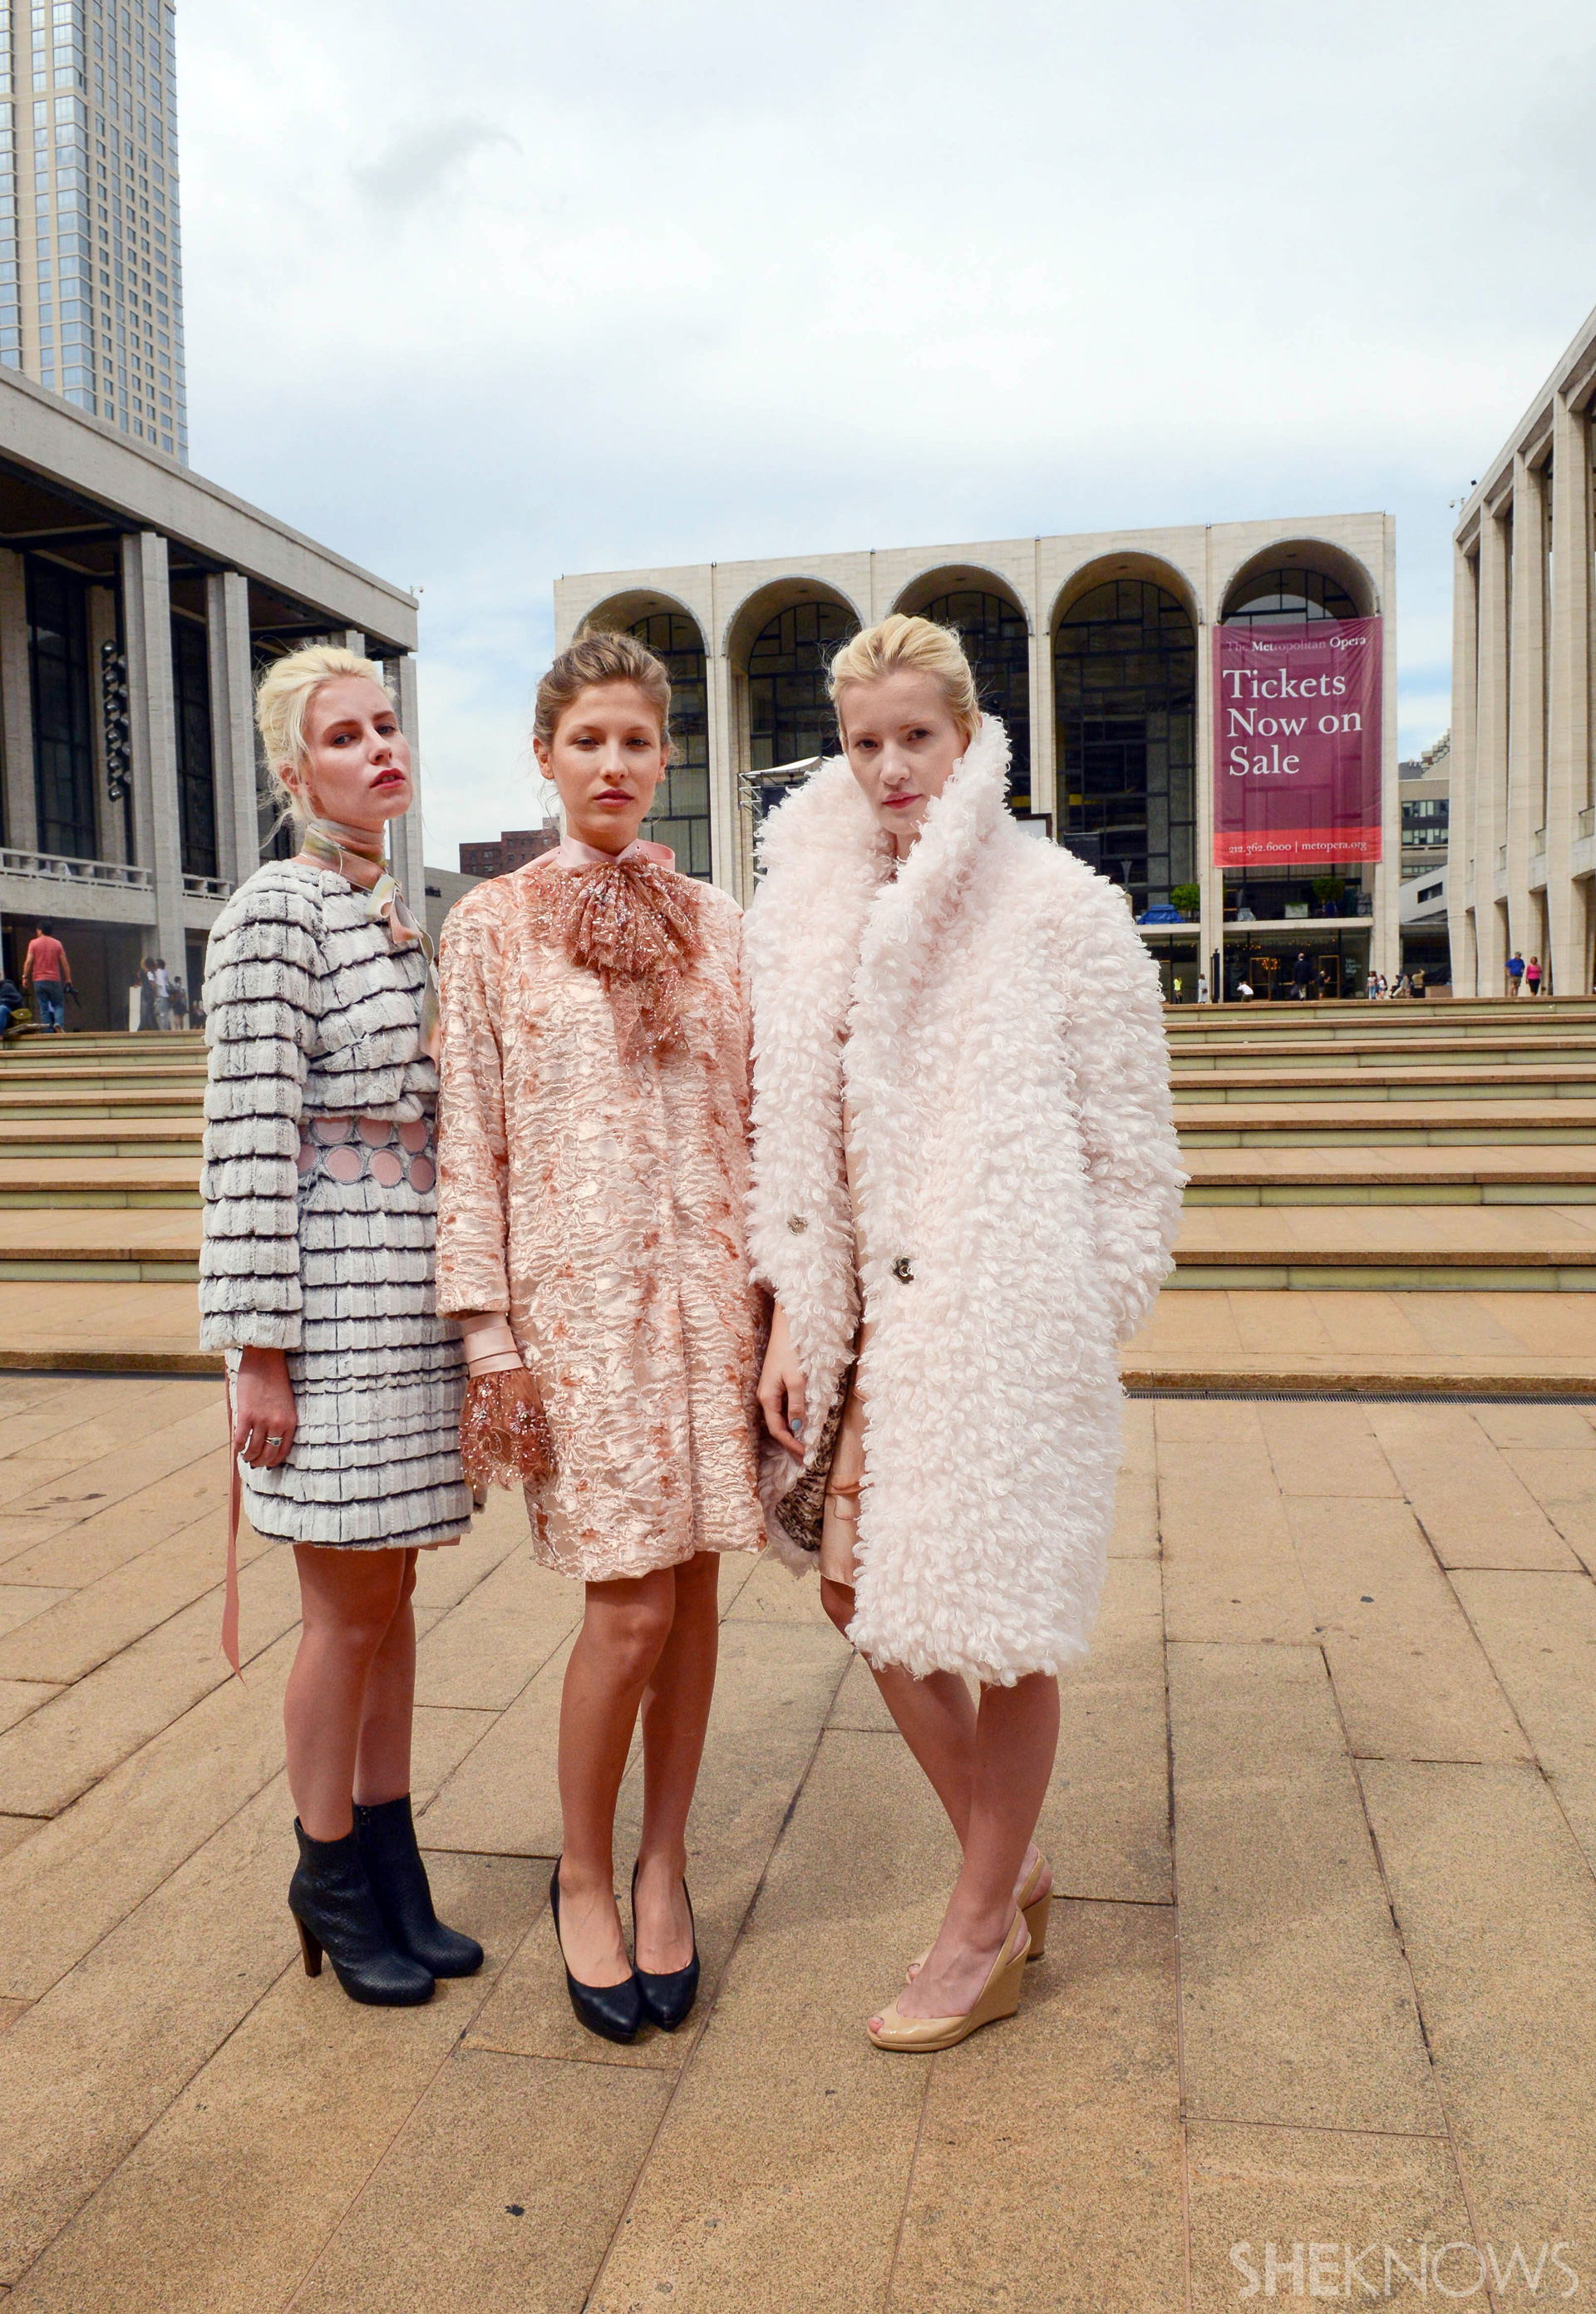 Fashion Week wraps up 1